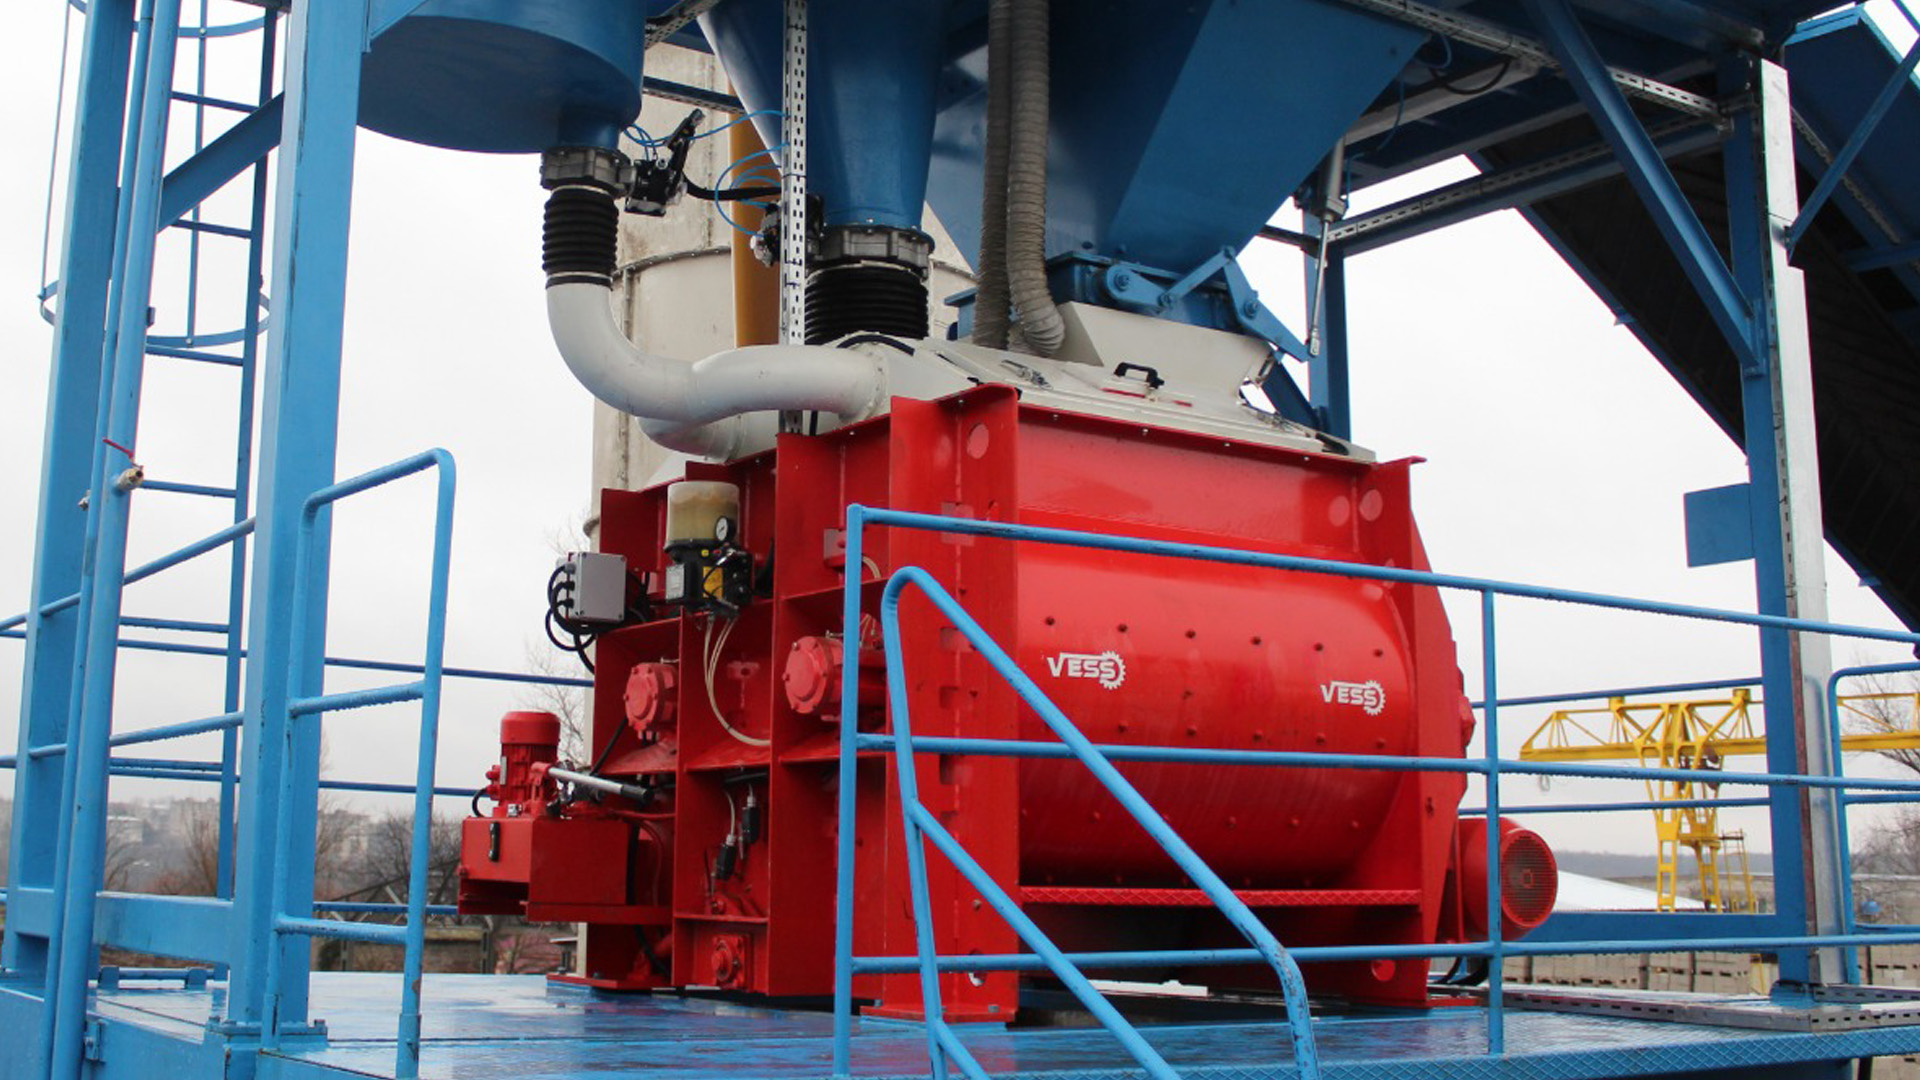 Mixer-For-Concrete-Batching-Plant.jpg